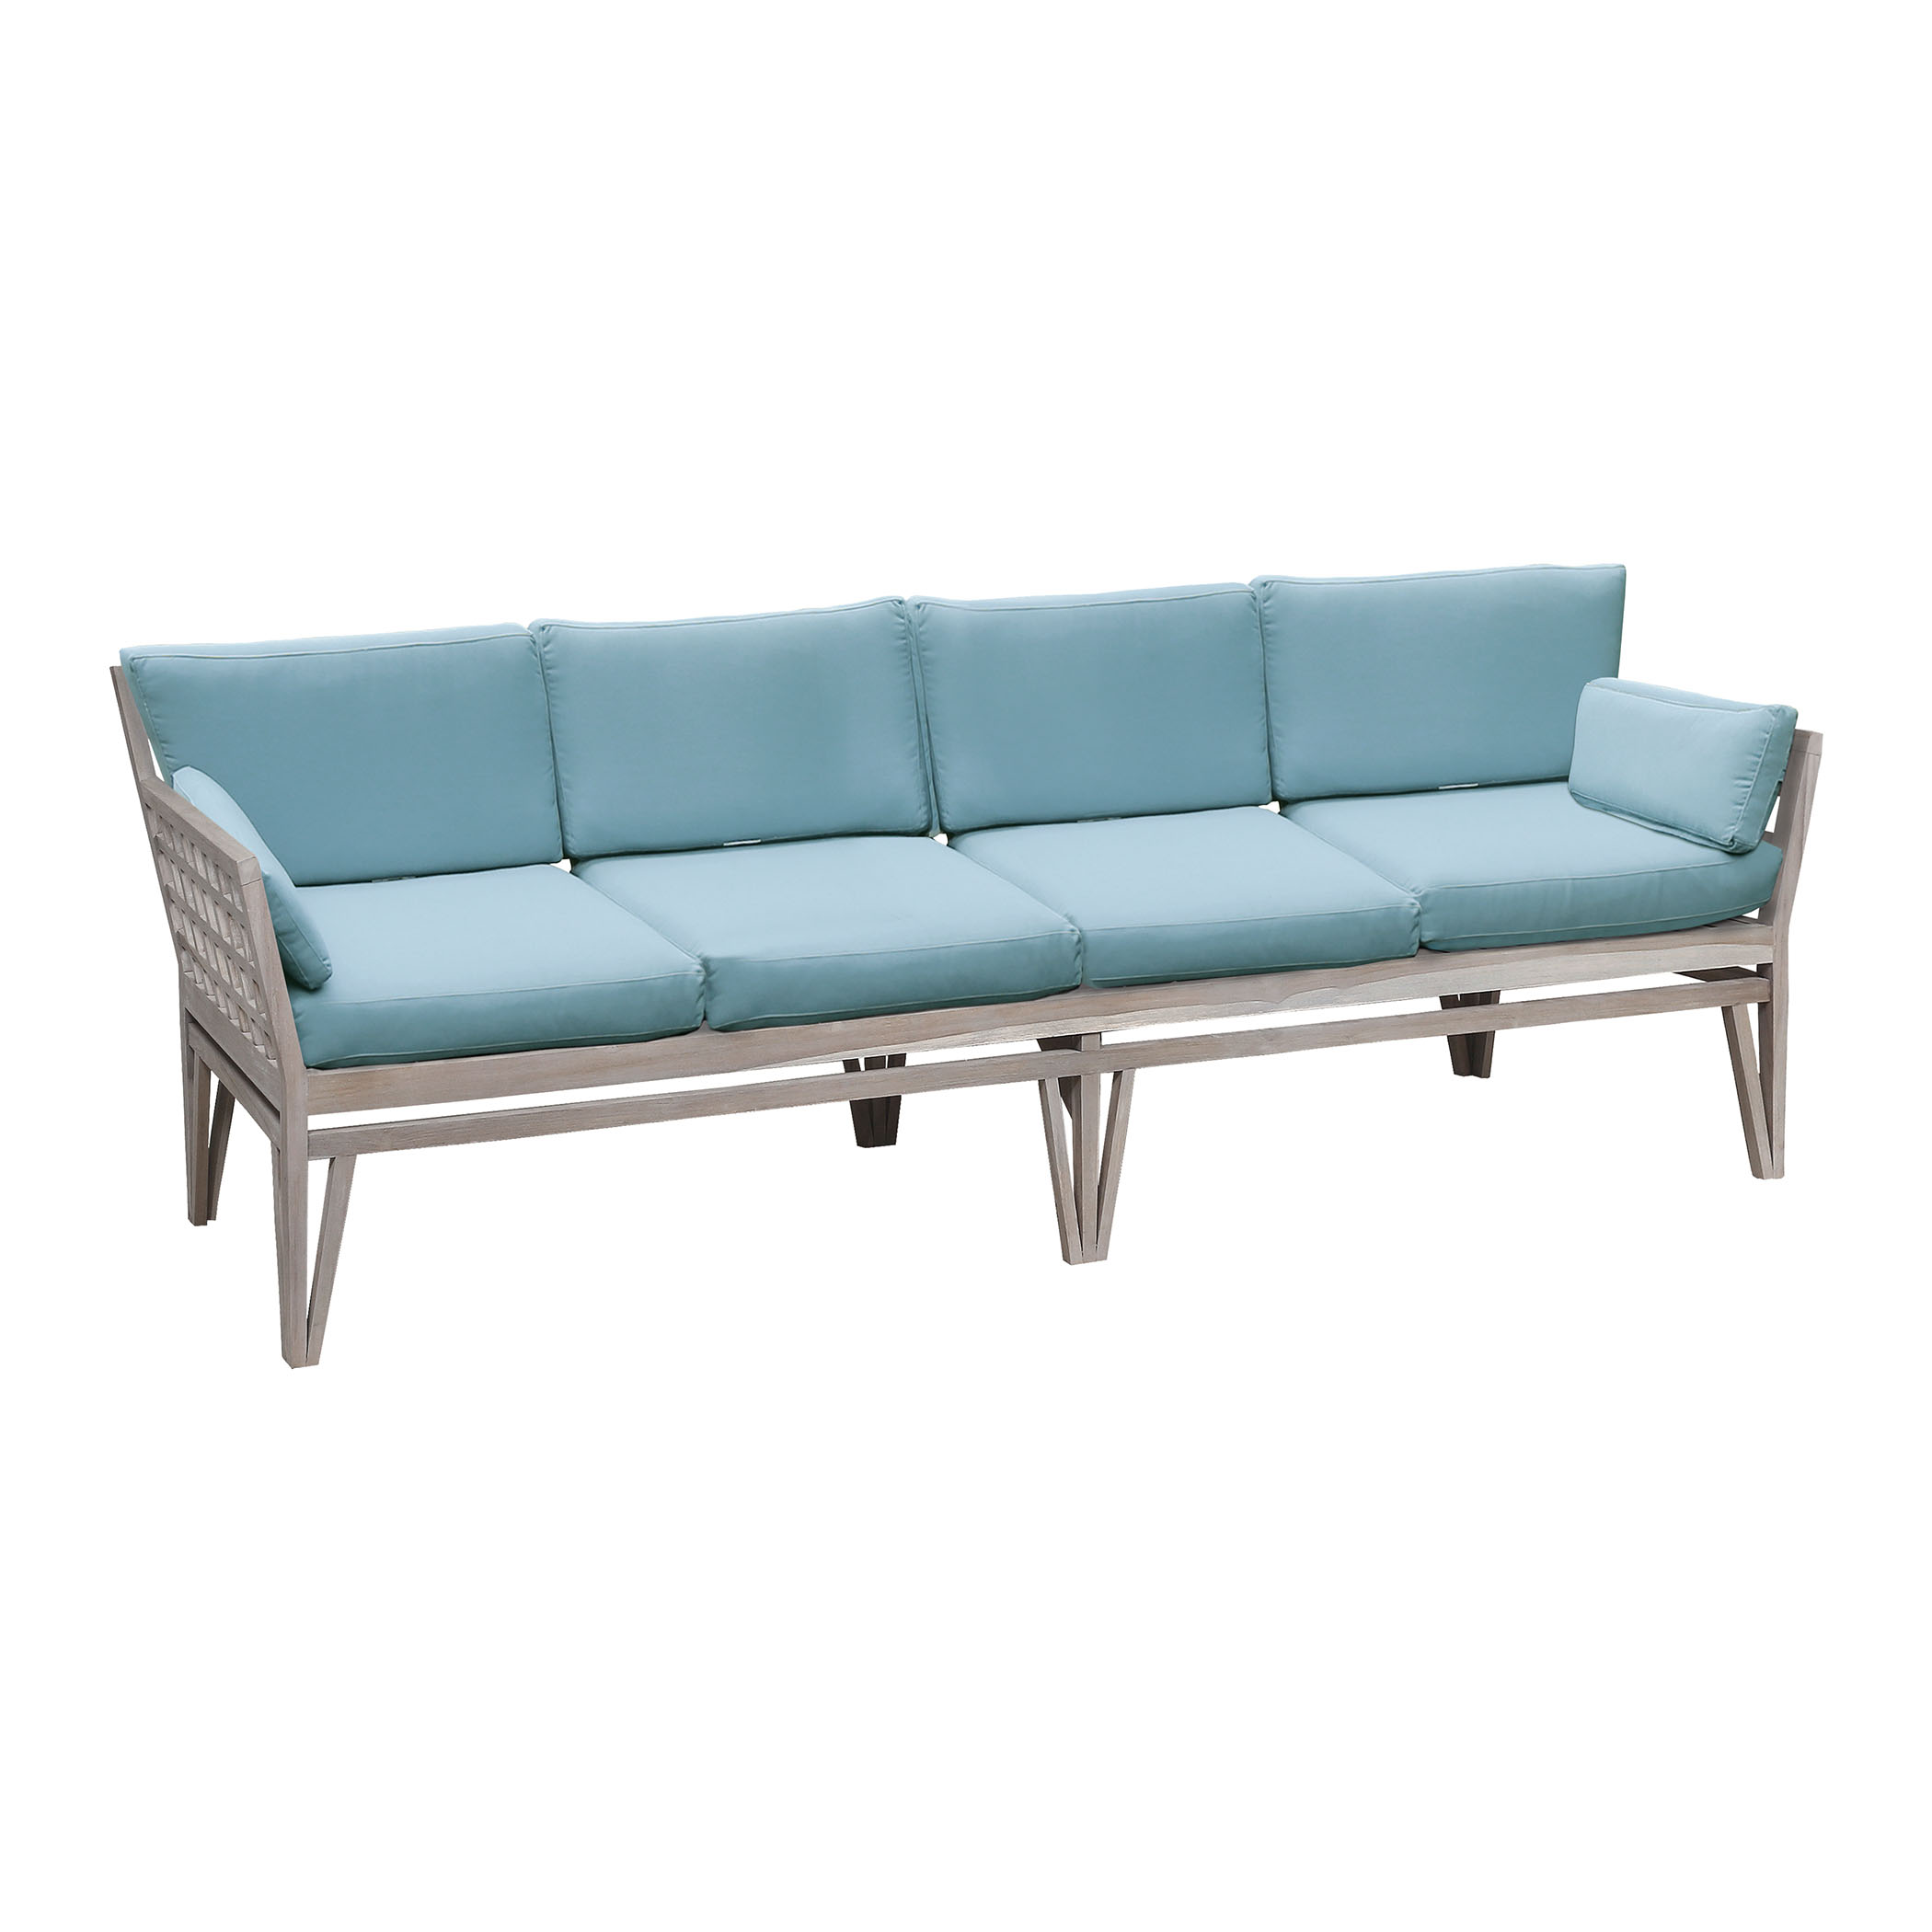 Newport Outdoor 4-Seat Sofa 6518004HT | ELK Home